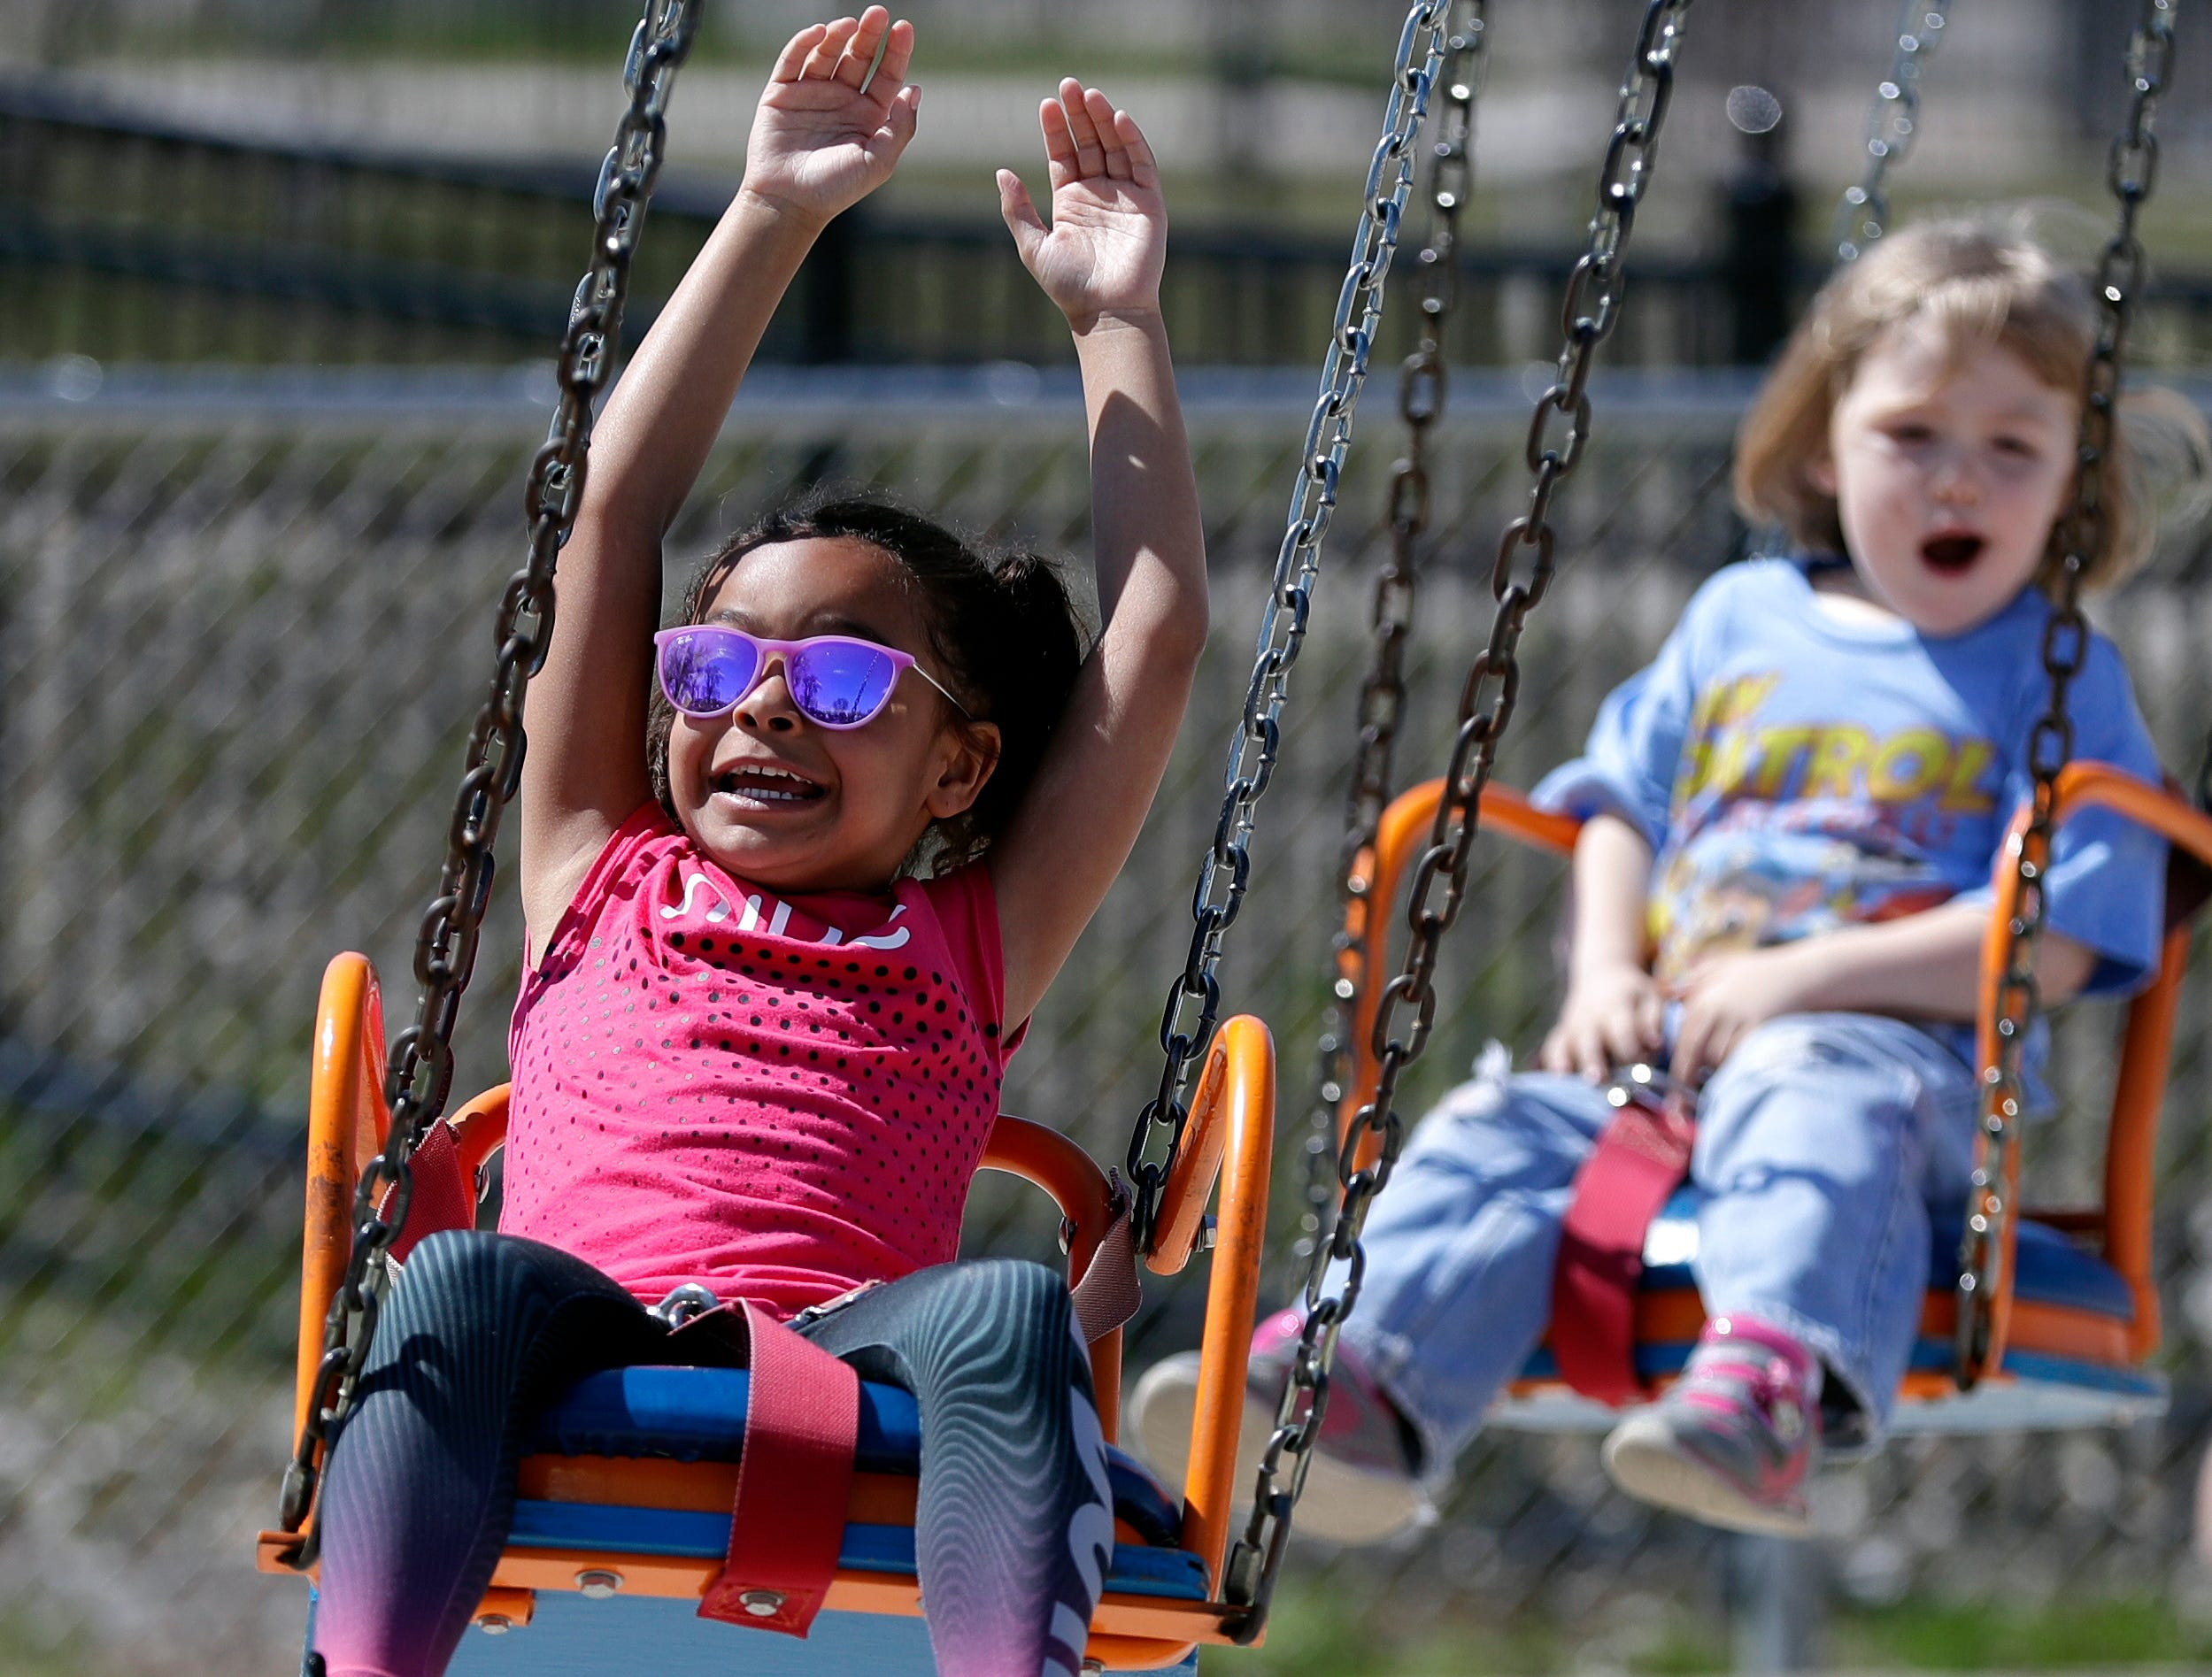 Bay Beach Amusement Park opened for the 2019 season on Saturday in Green Bay.